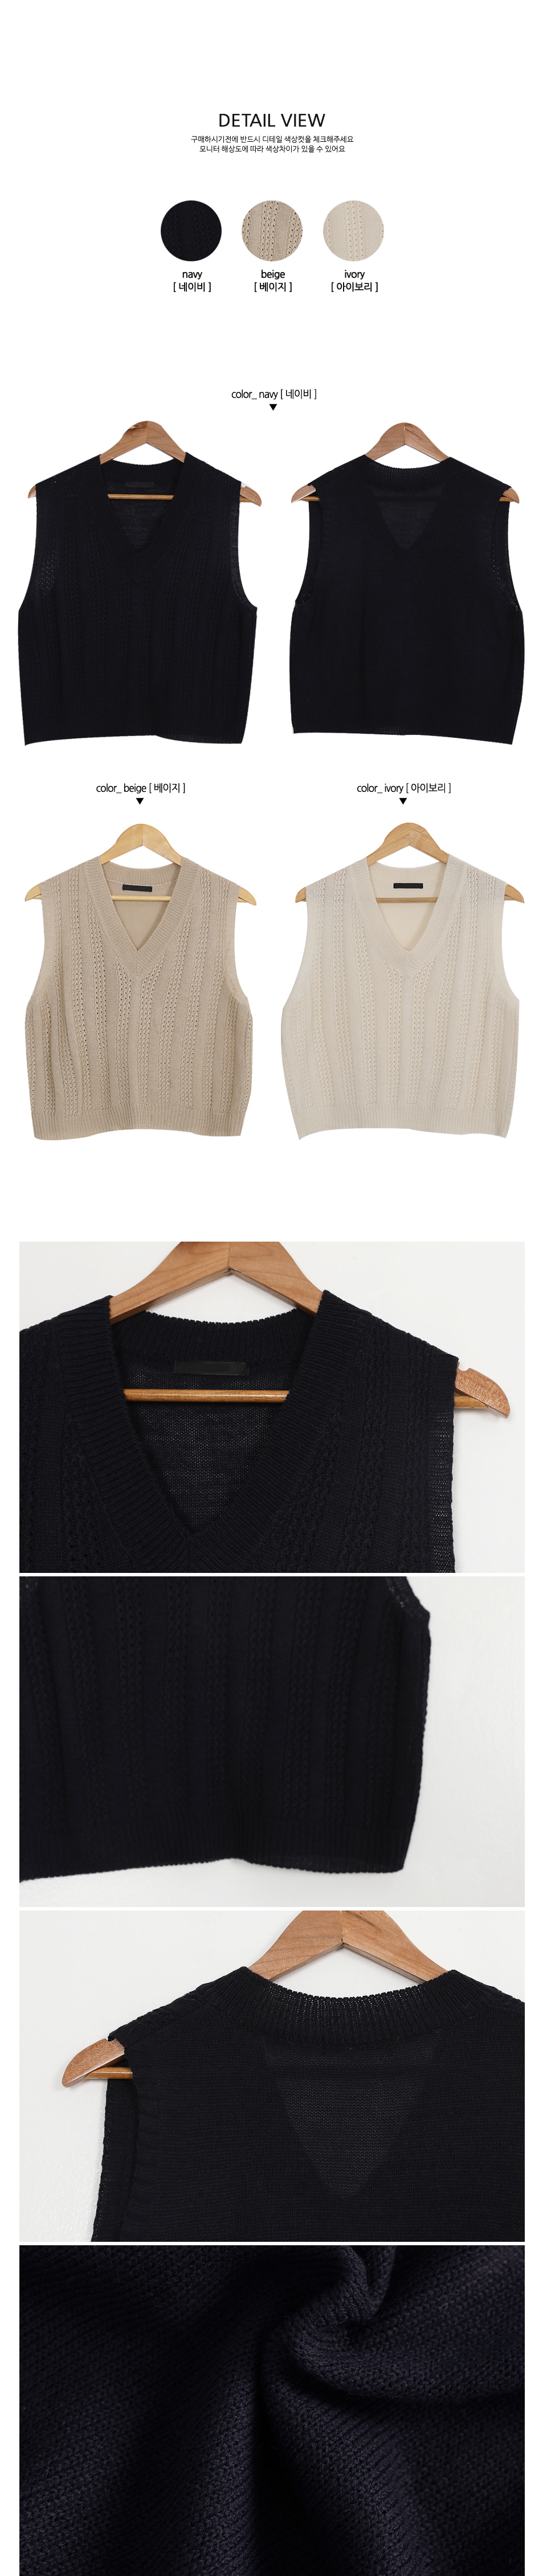 Wayscotch Knit Vest-It is the best product to loosen and it is good to coordinate variously.